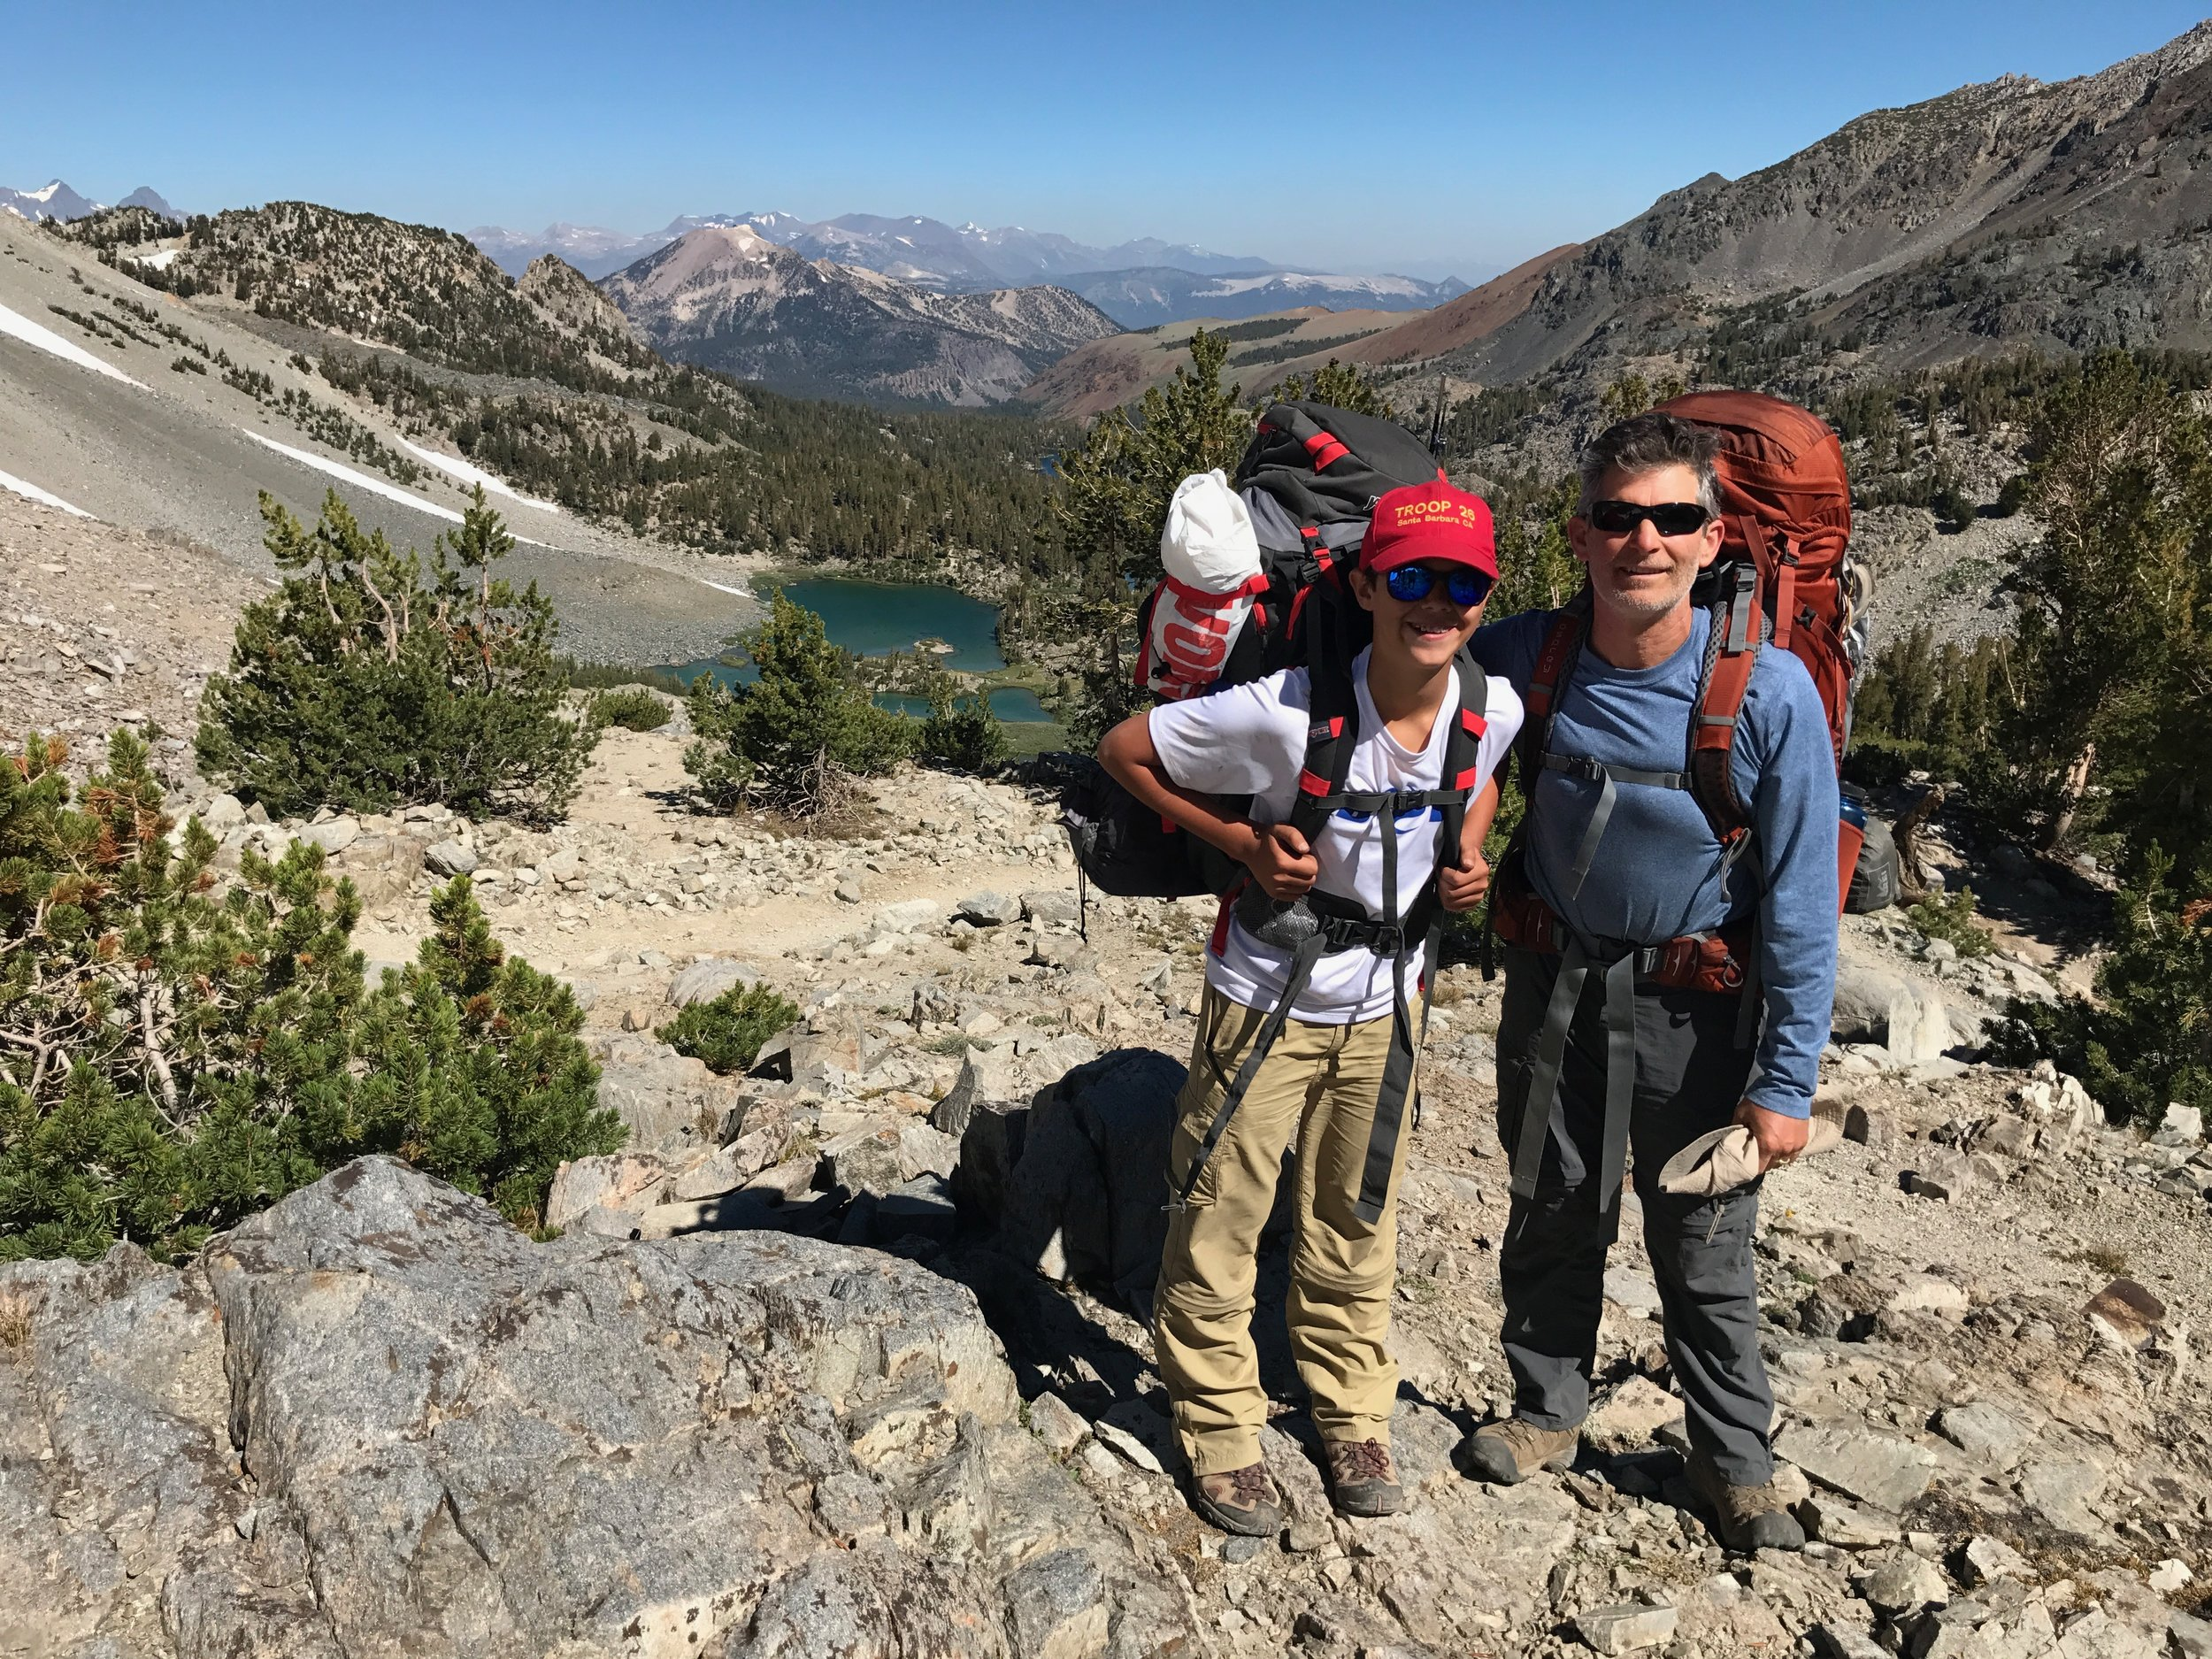 Mike backpacking in the sierras with his youngest son, nicolis.